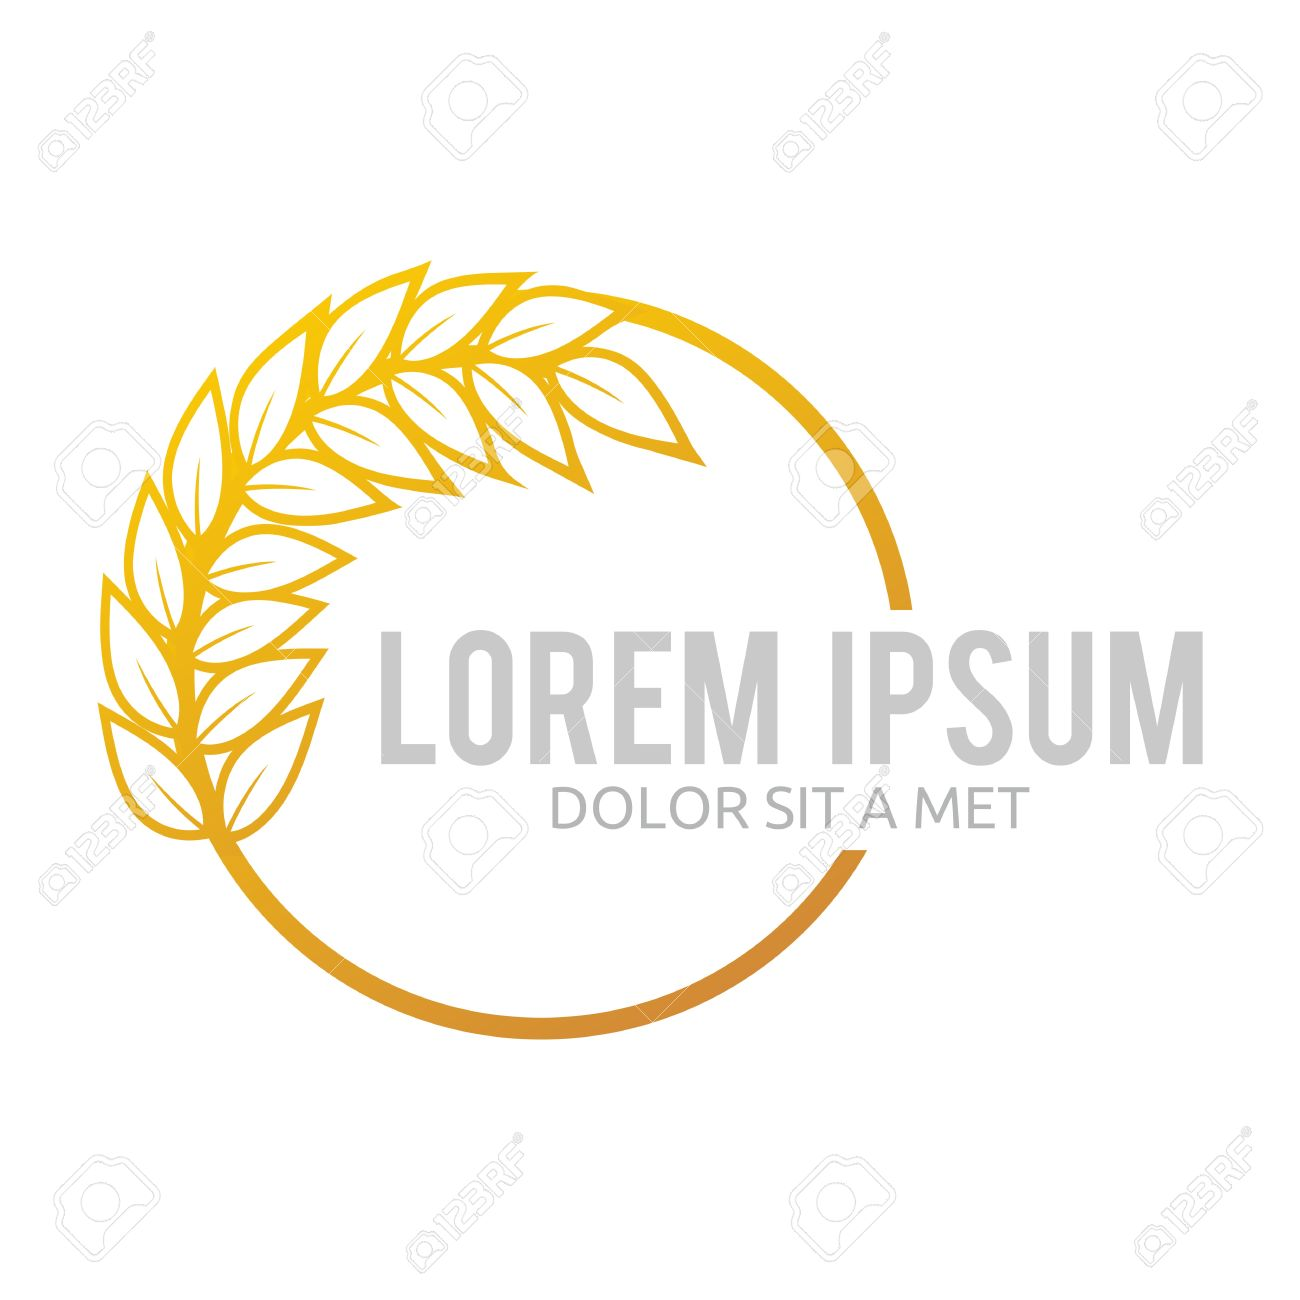 Wheat Abstract Market Plant Product Design Royalty Free Cliparts.